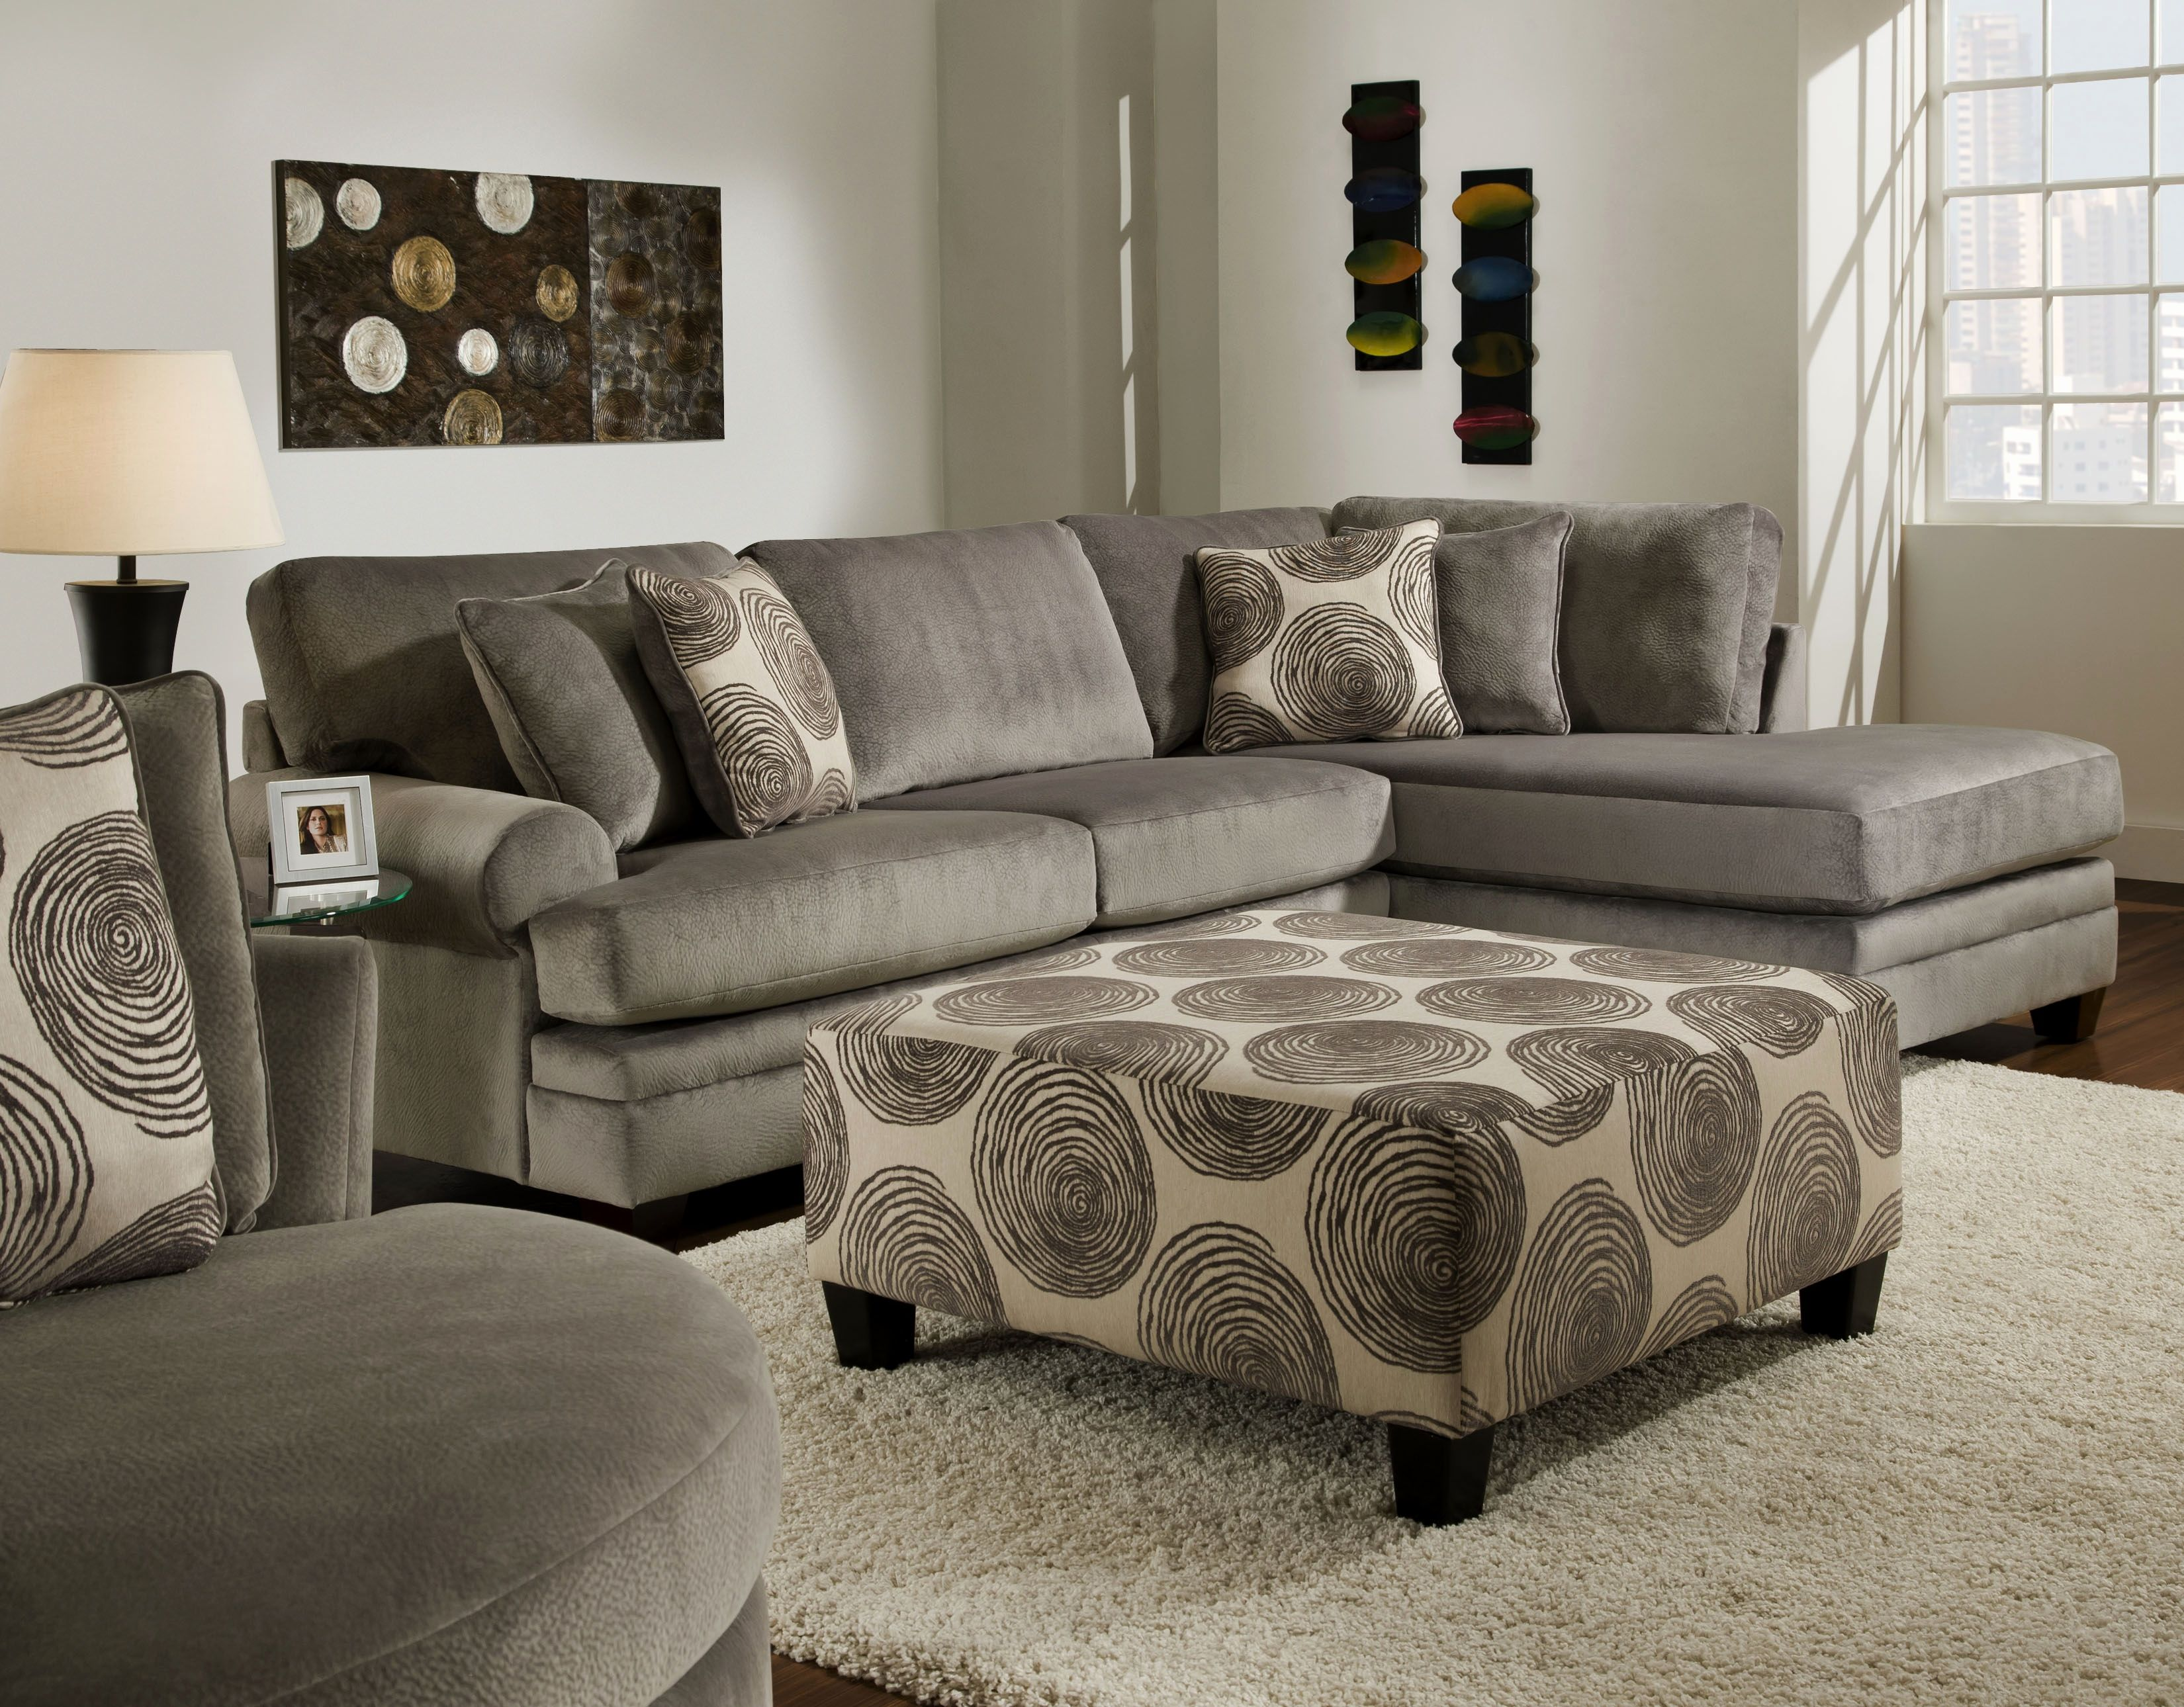 Awesome Light Grey Leather Sofa Photographs Sofa Light Grey Sectional Sofa Canada Awesome Grey Sofa Sectional Sofa Couch Chelsea Home Furniture Sectional Sofa